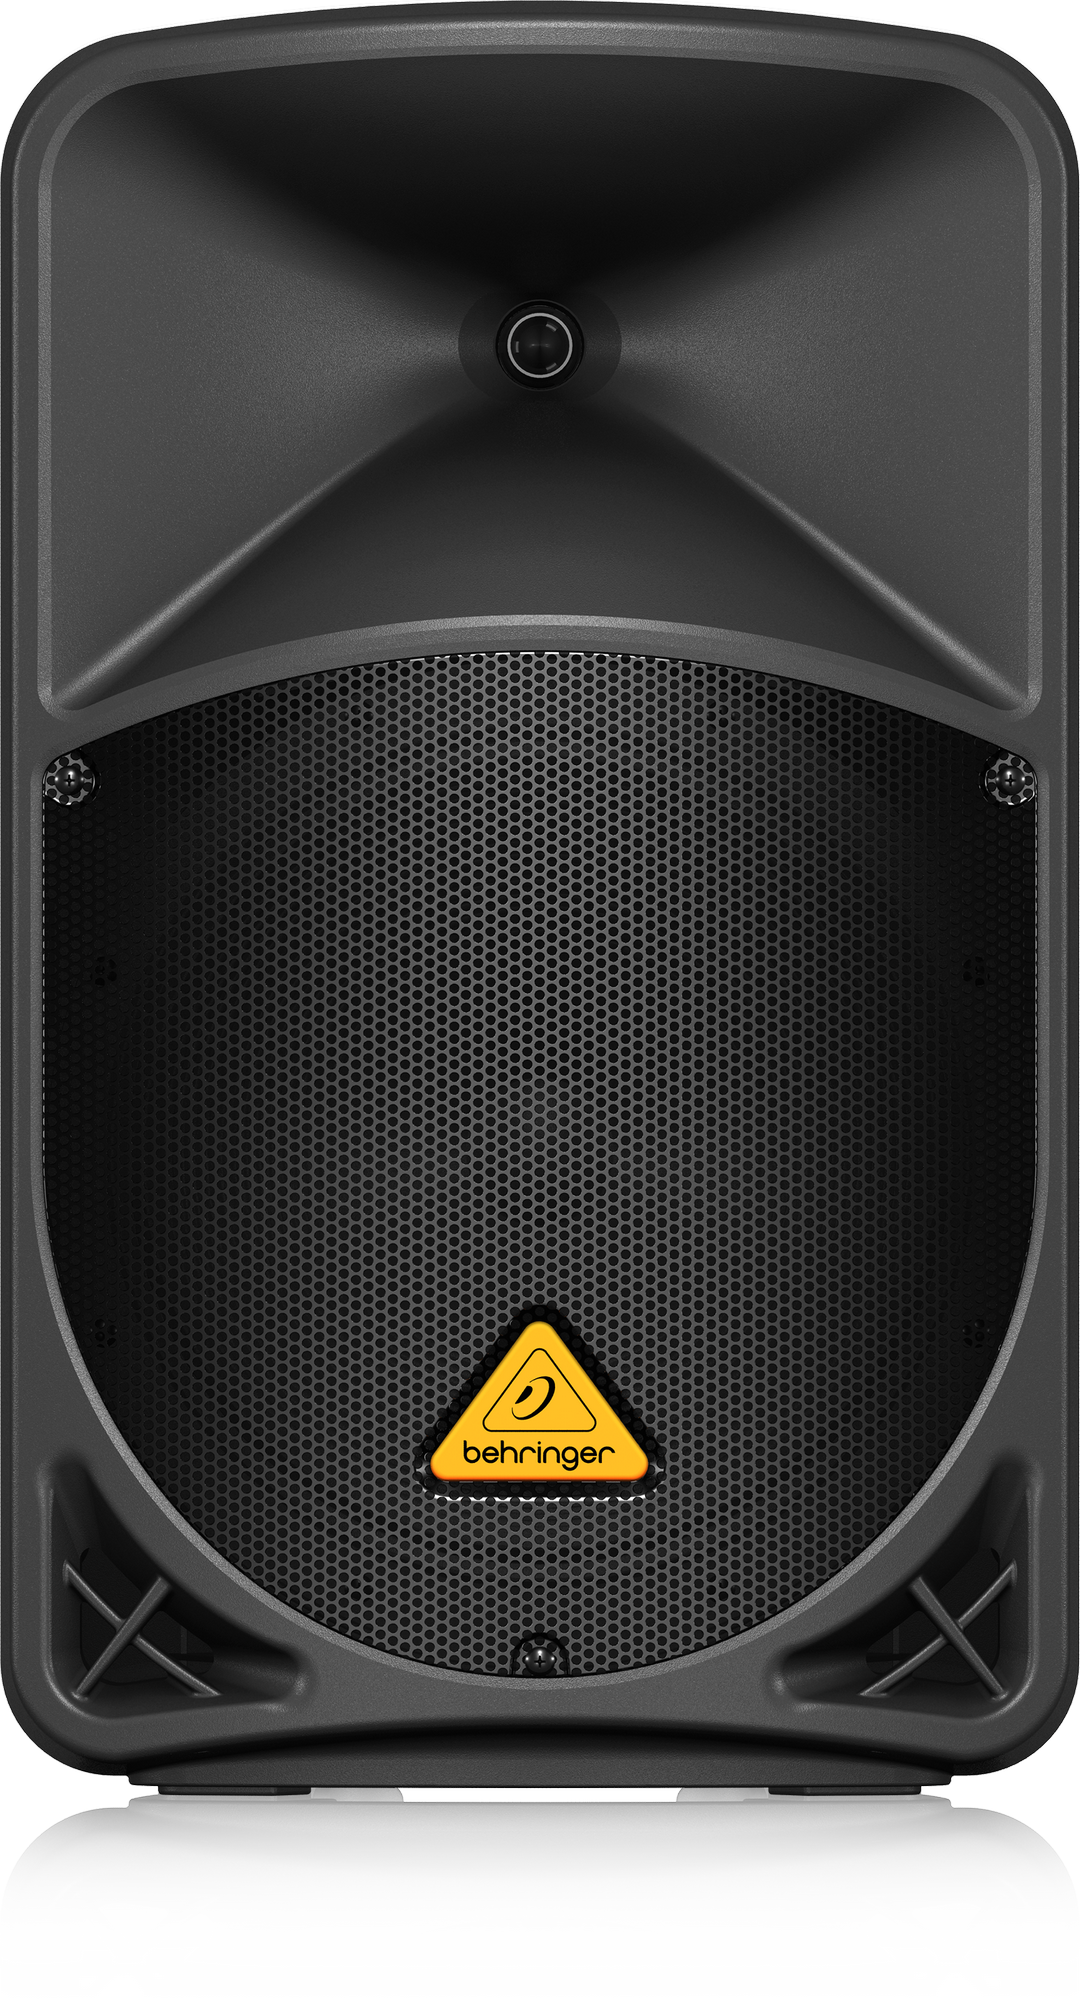 """Behringer B112MP3 - Two-way 12"""" speaker with integrated MP3 player"""